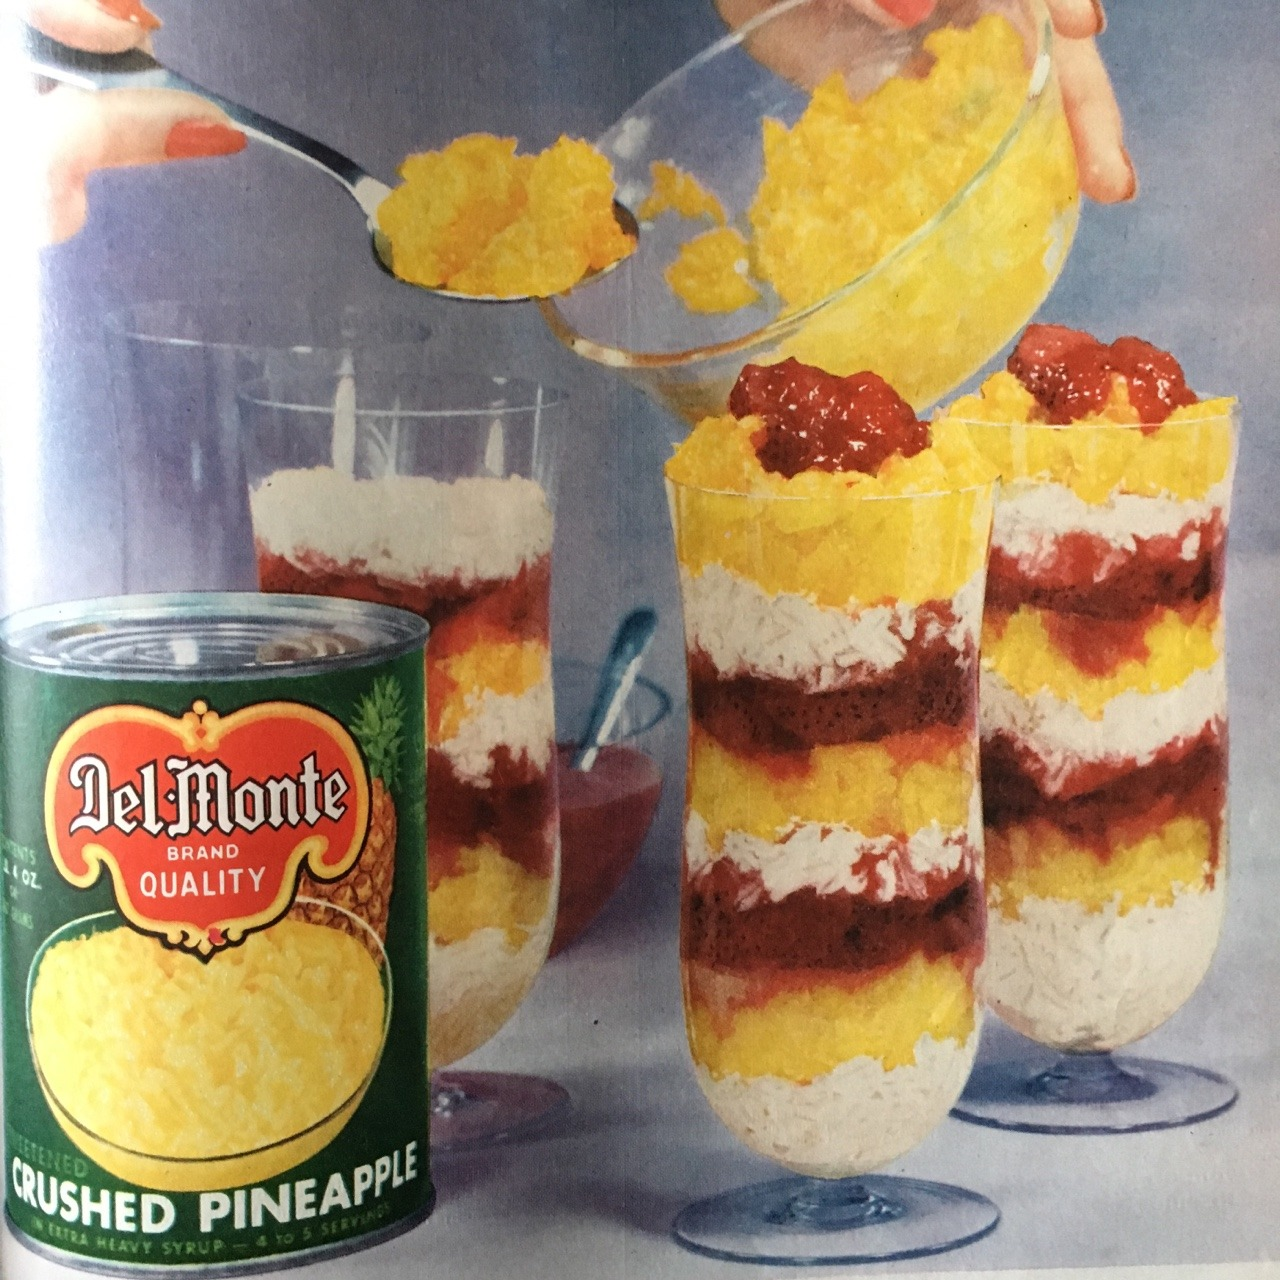 Del Monte Crushed Pineapple.     Better Homes and Gardens. June 1956.